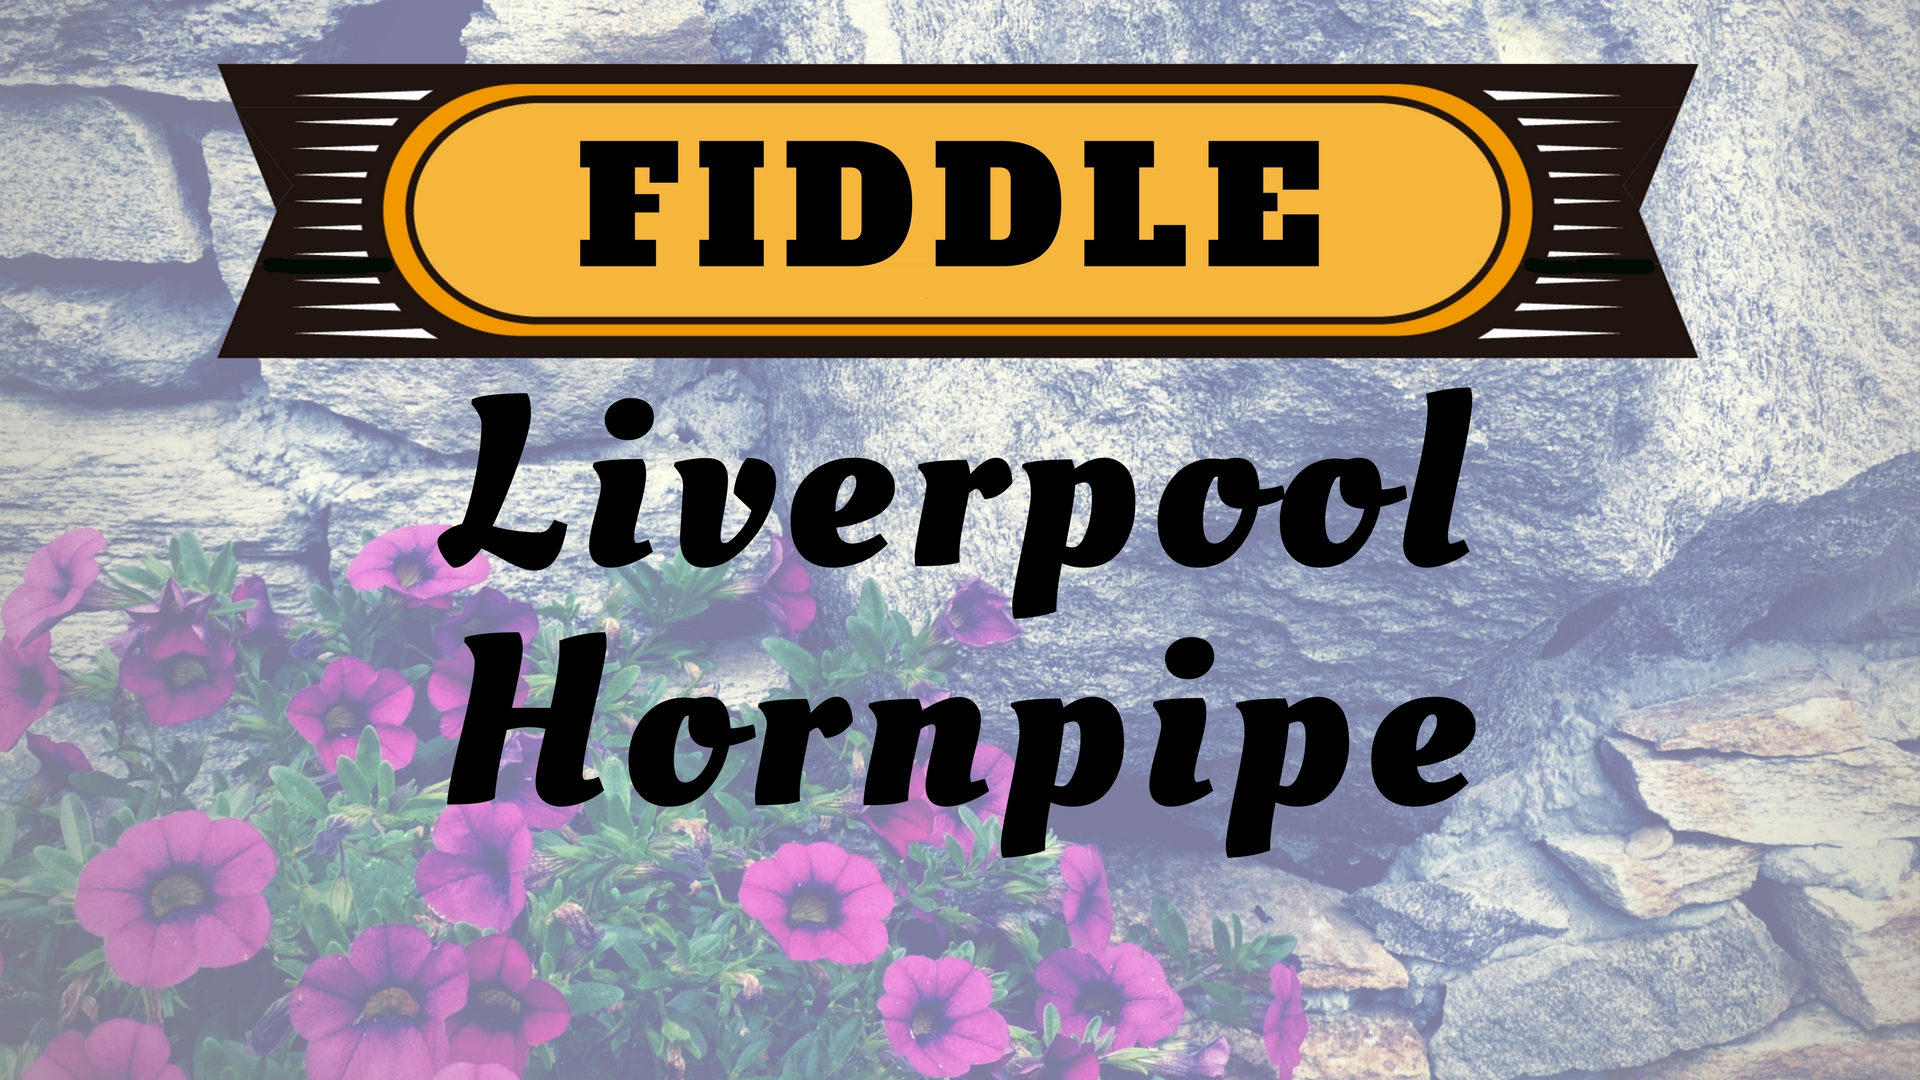 Fiddle liverpool